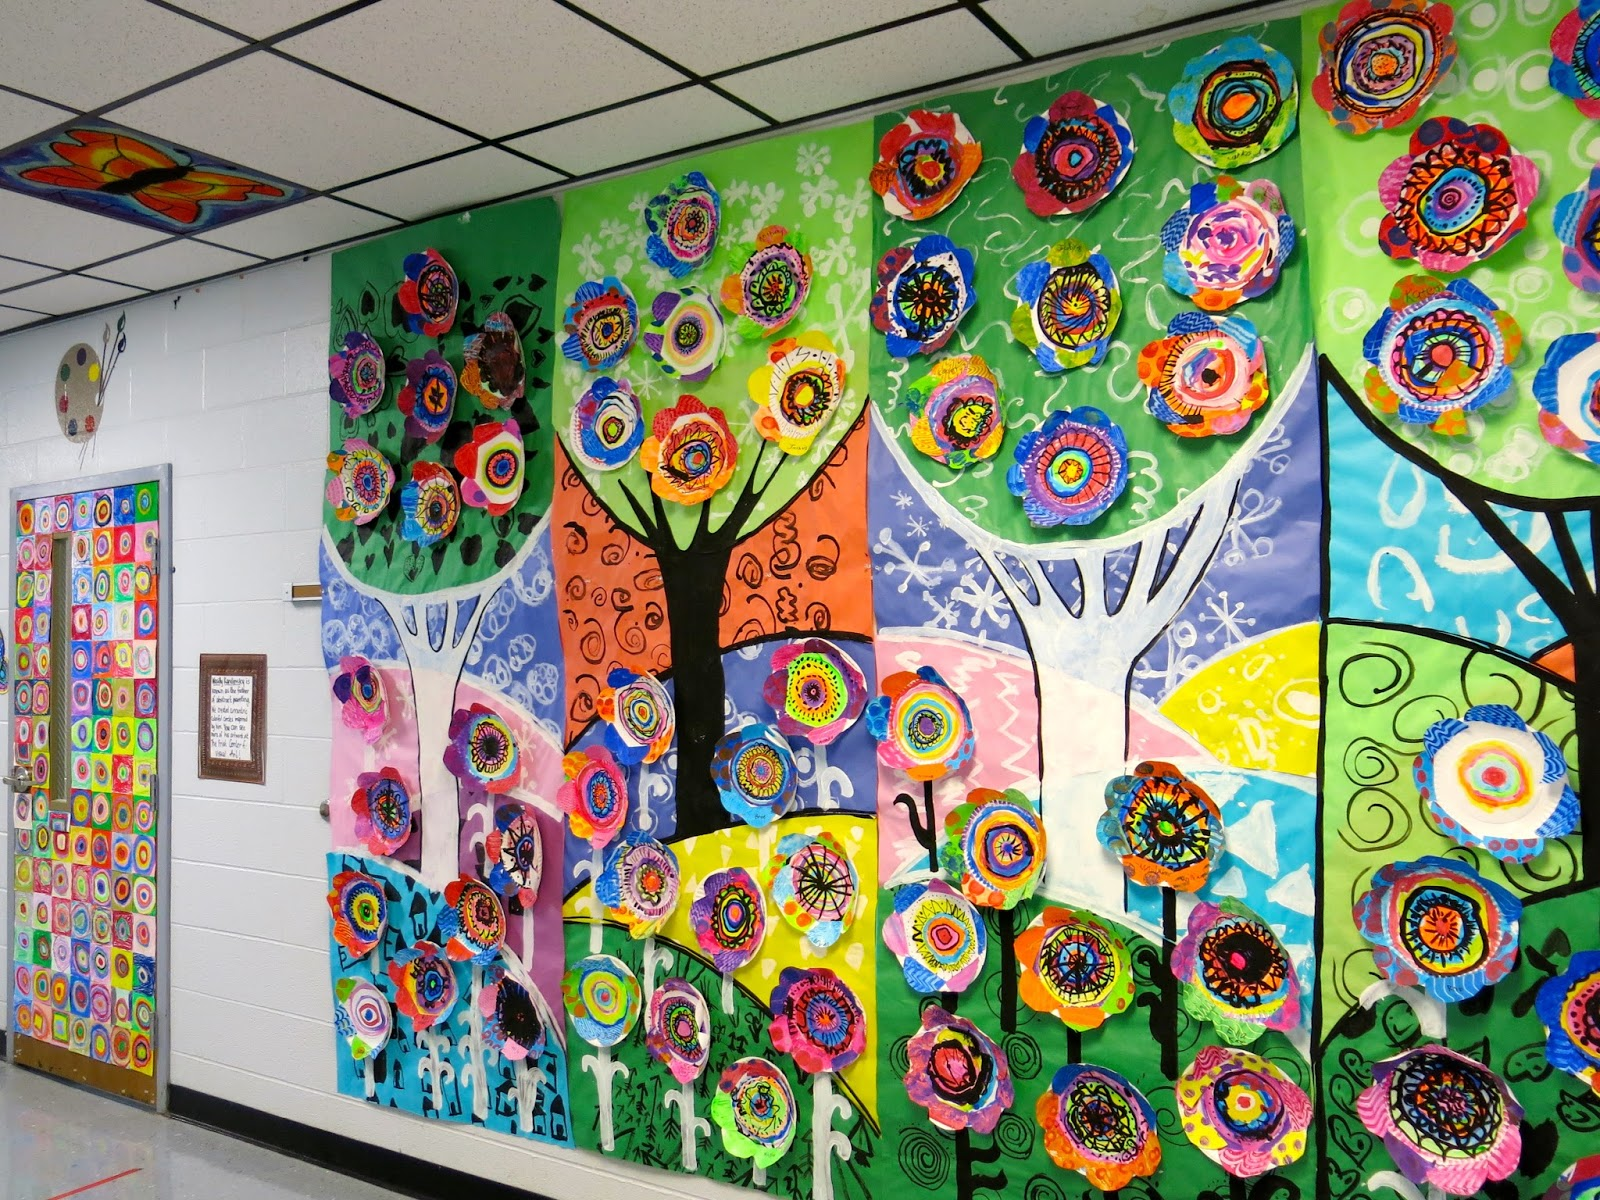 Cassie Stephens In The Art Room Top 10 Tips To Putting Together An Amazing Art Show